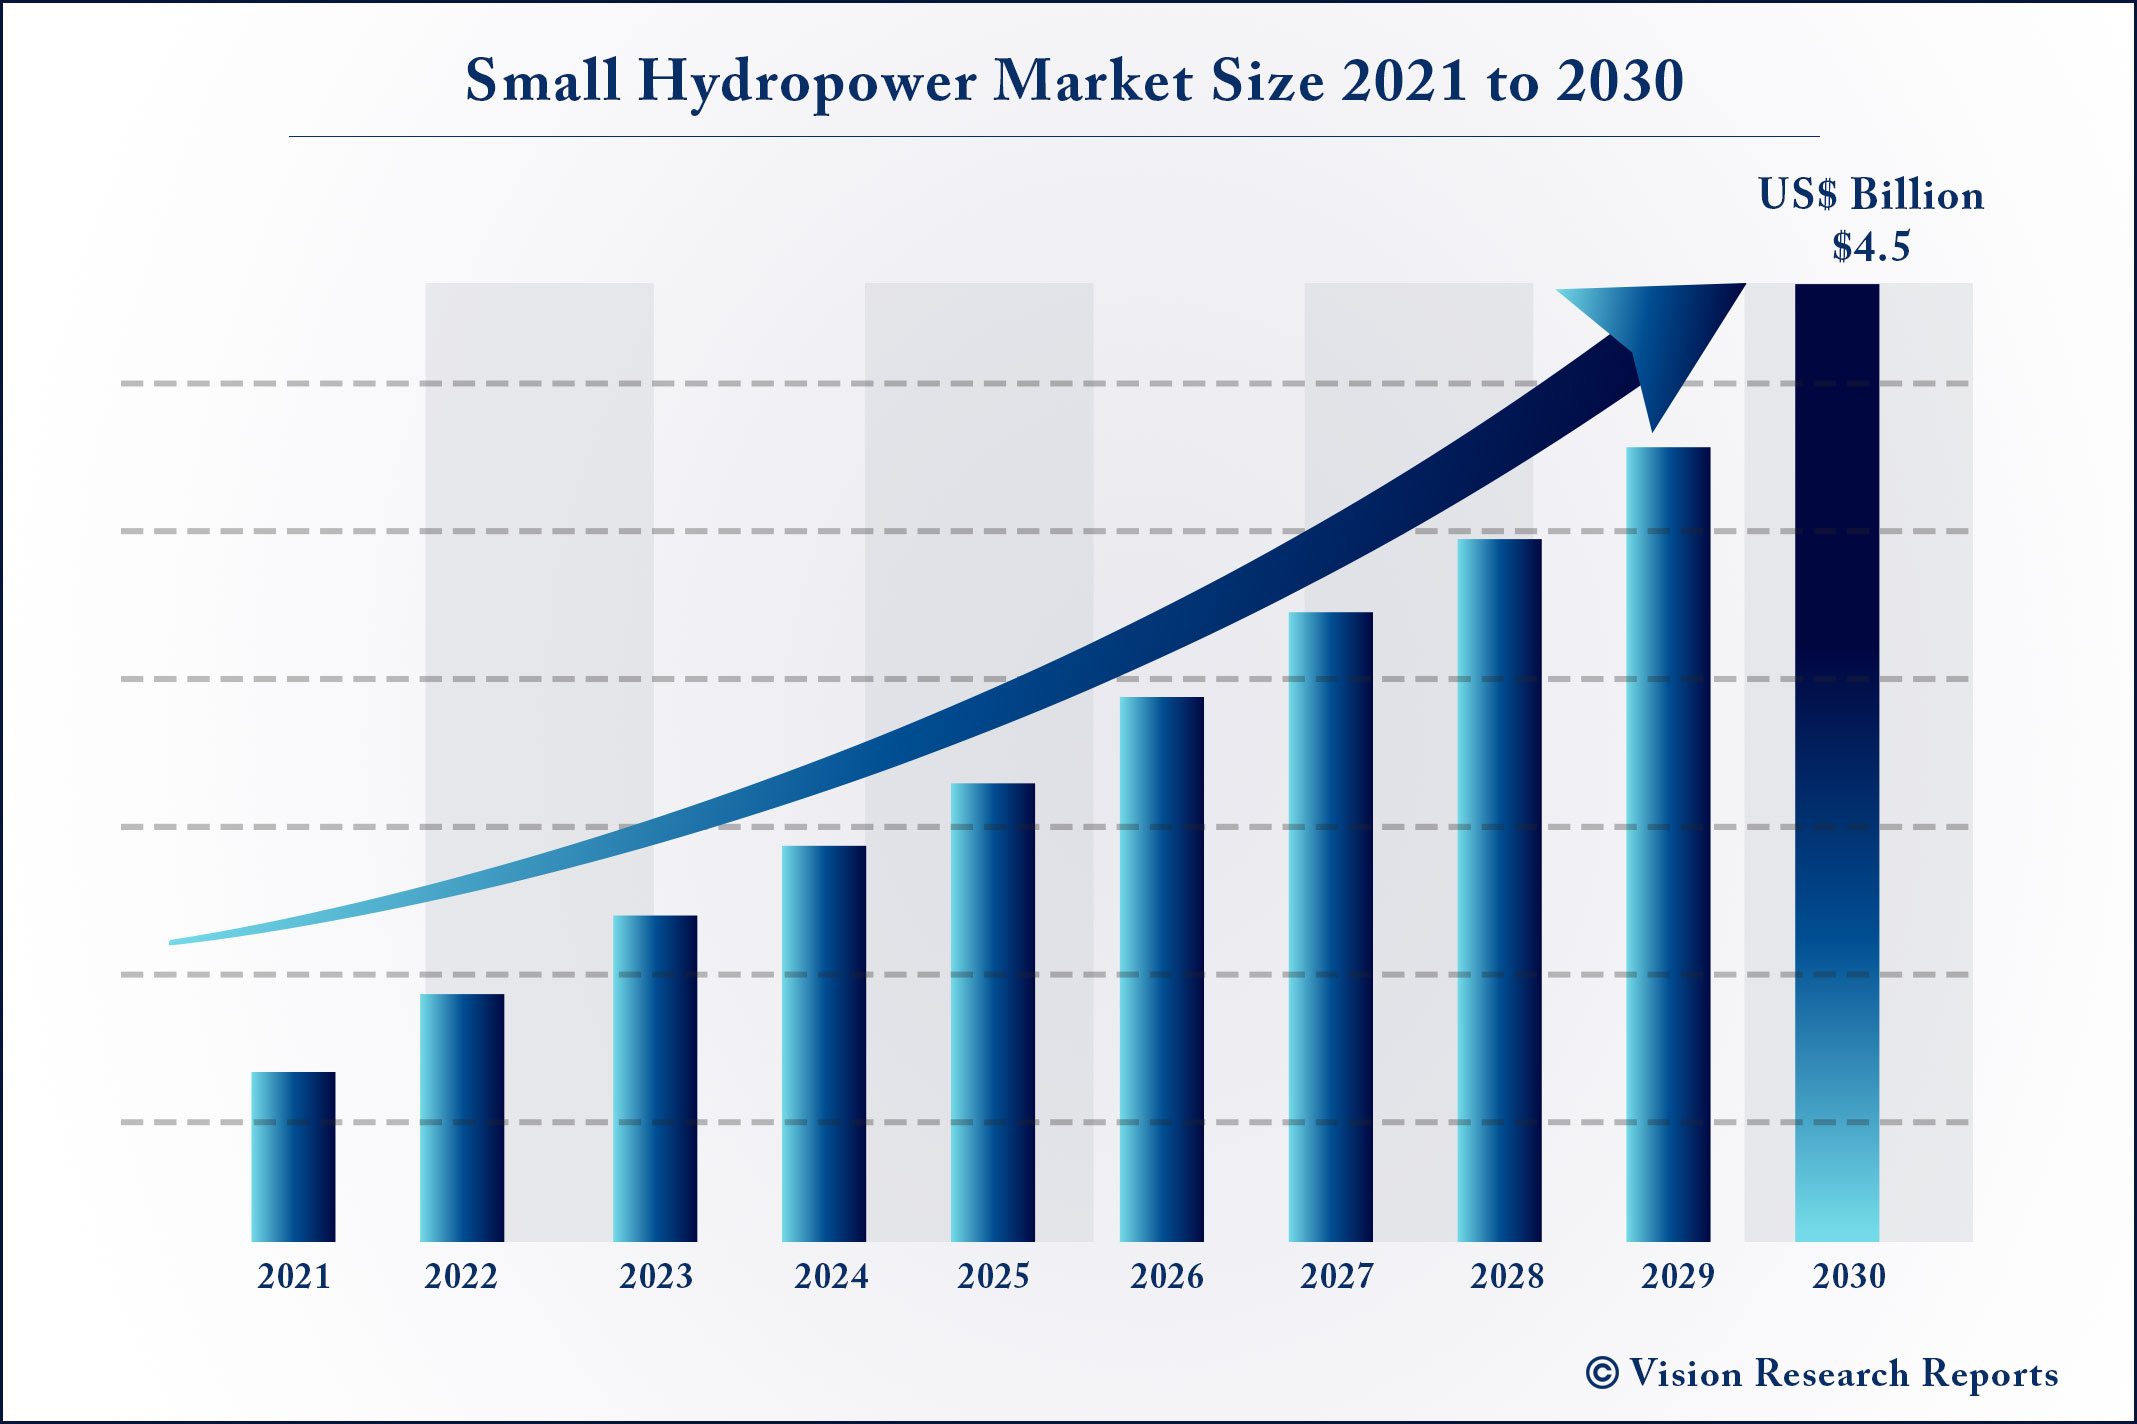 Small Hydropower Market Size 2021 to 2030